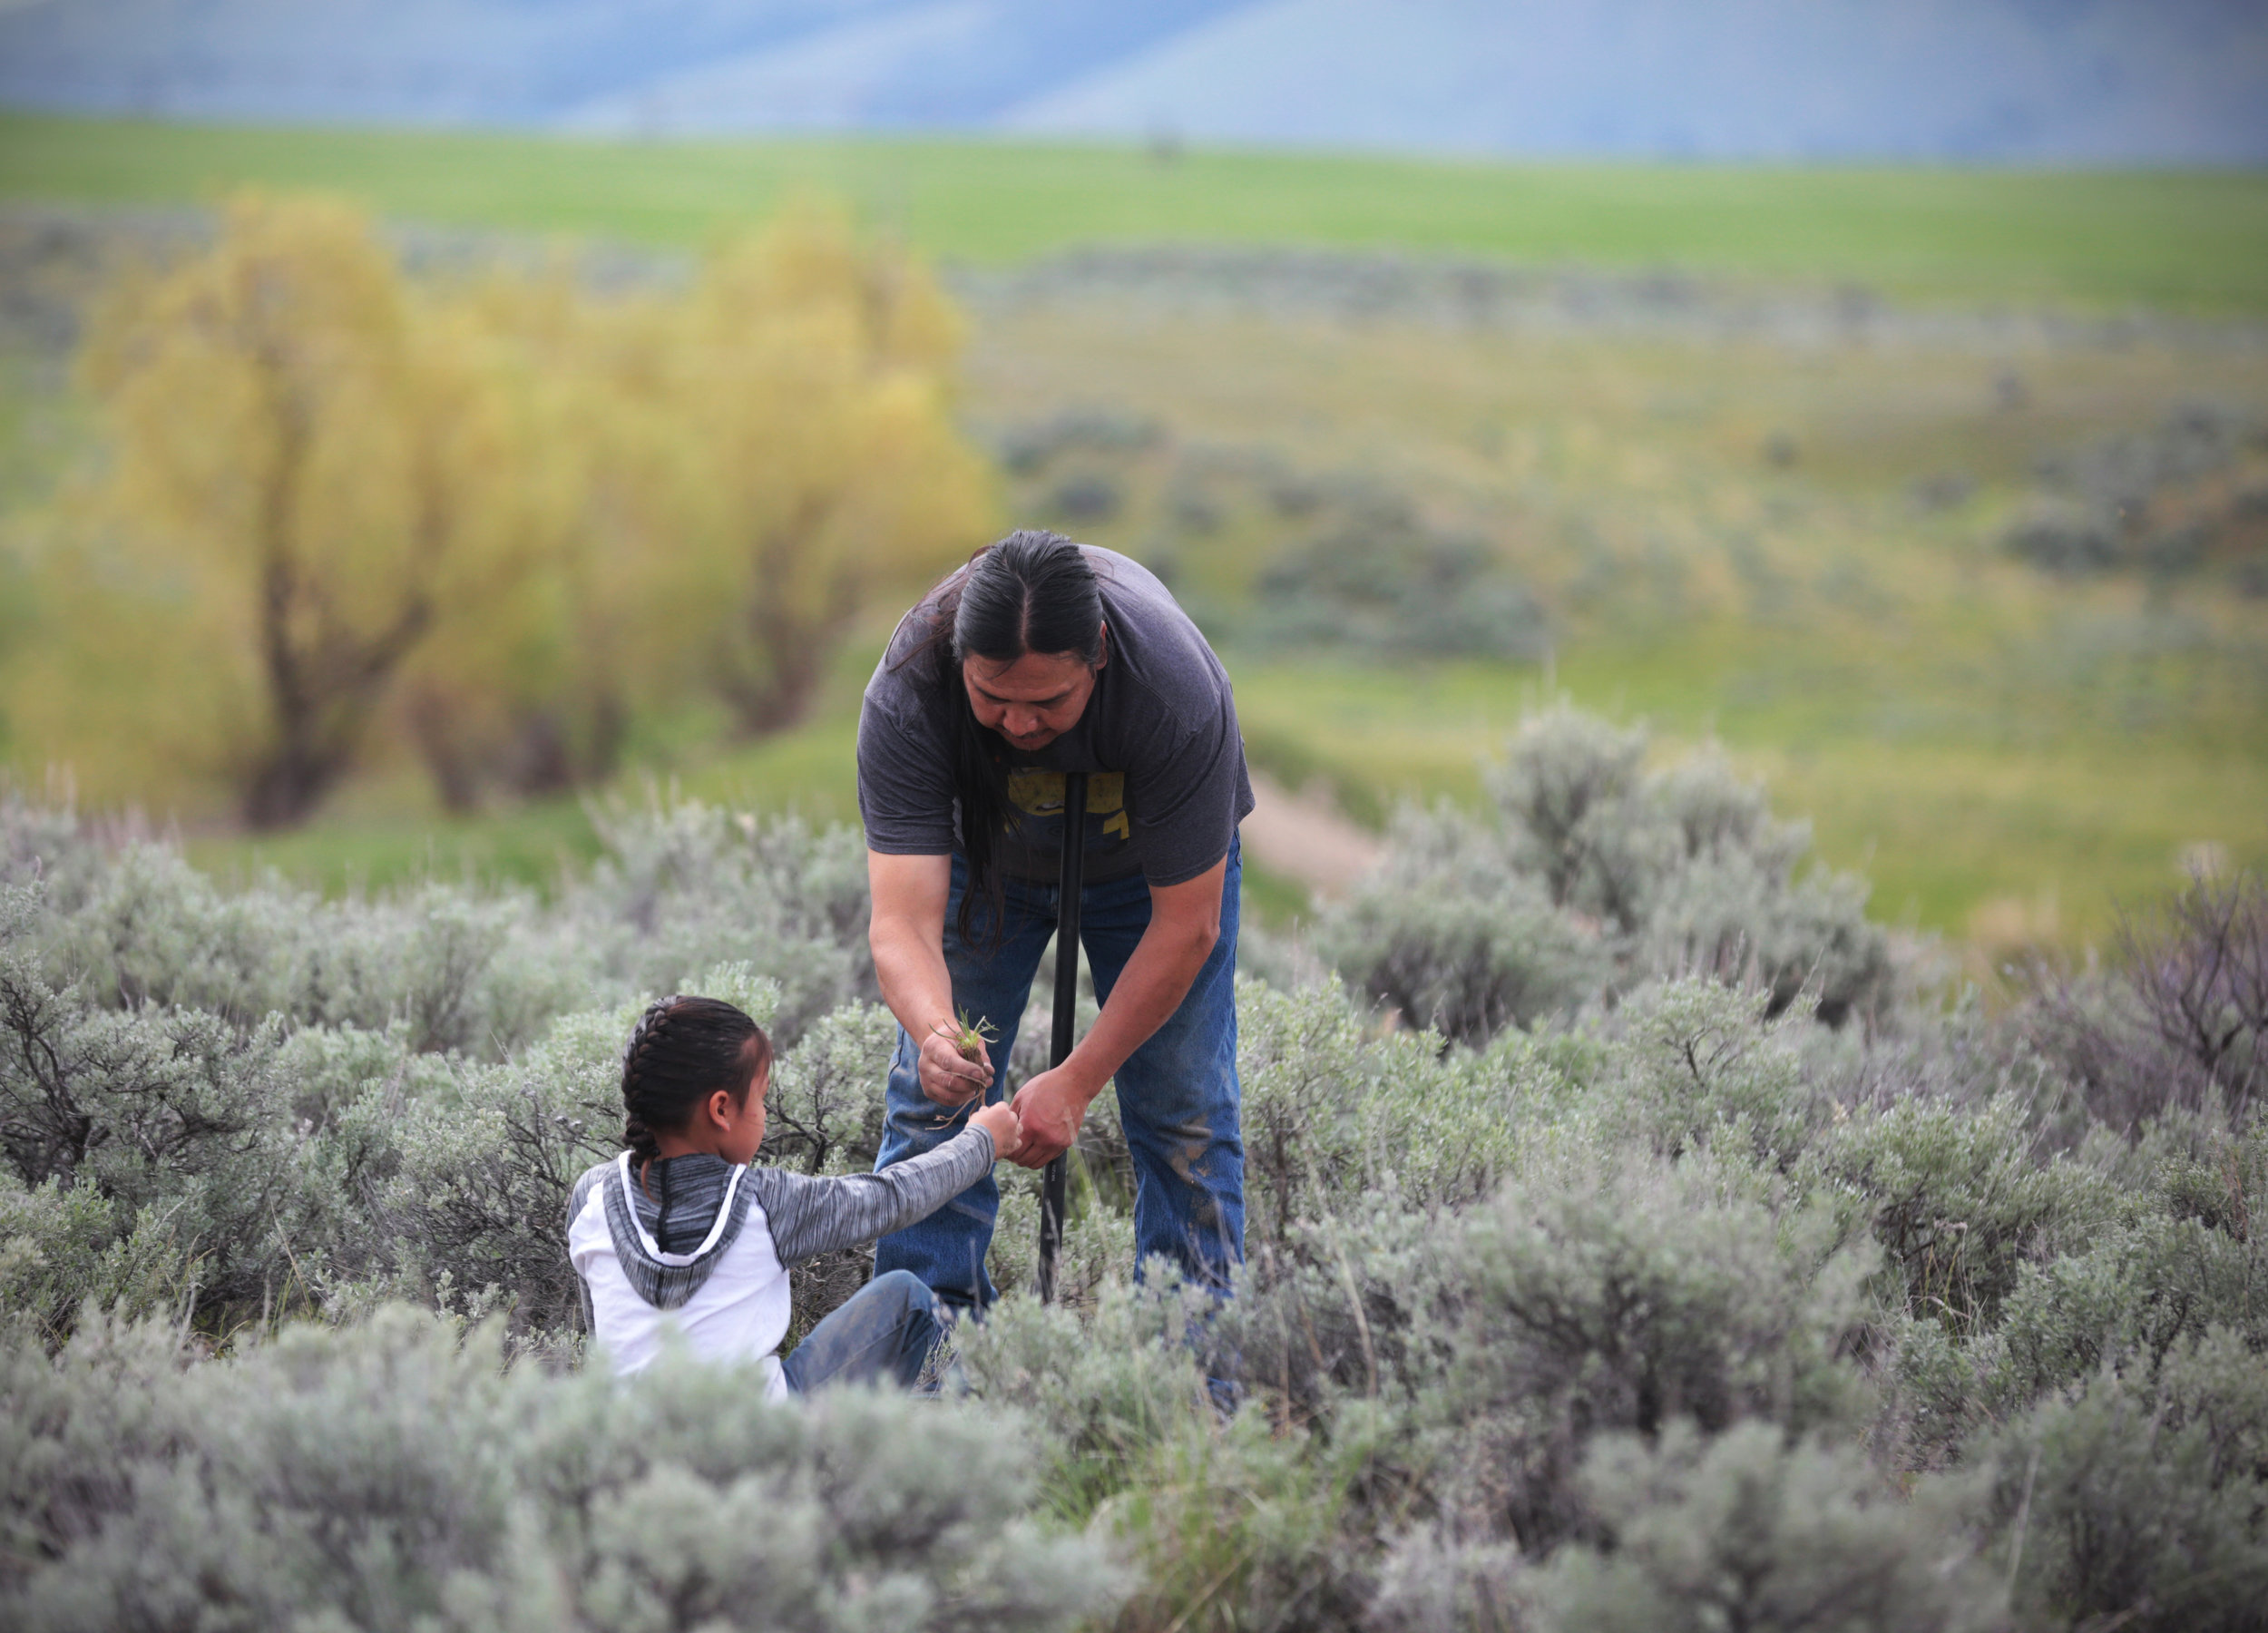 My dad and my nephew, Andrew, 7, dig for bitterroot during the Confederated Salish and Kootenai Tribes' annual gathering on May 9, 2018. The bitterroot was a staple harvest for the Salish people and each year after the bitterroot is dug and peeled, the members return to the Long House to eat the bitterroot and the feast that accompanies it.